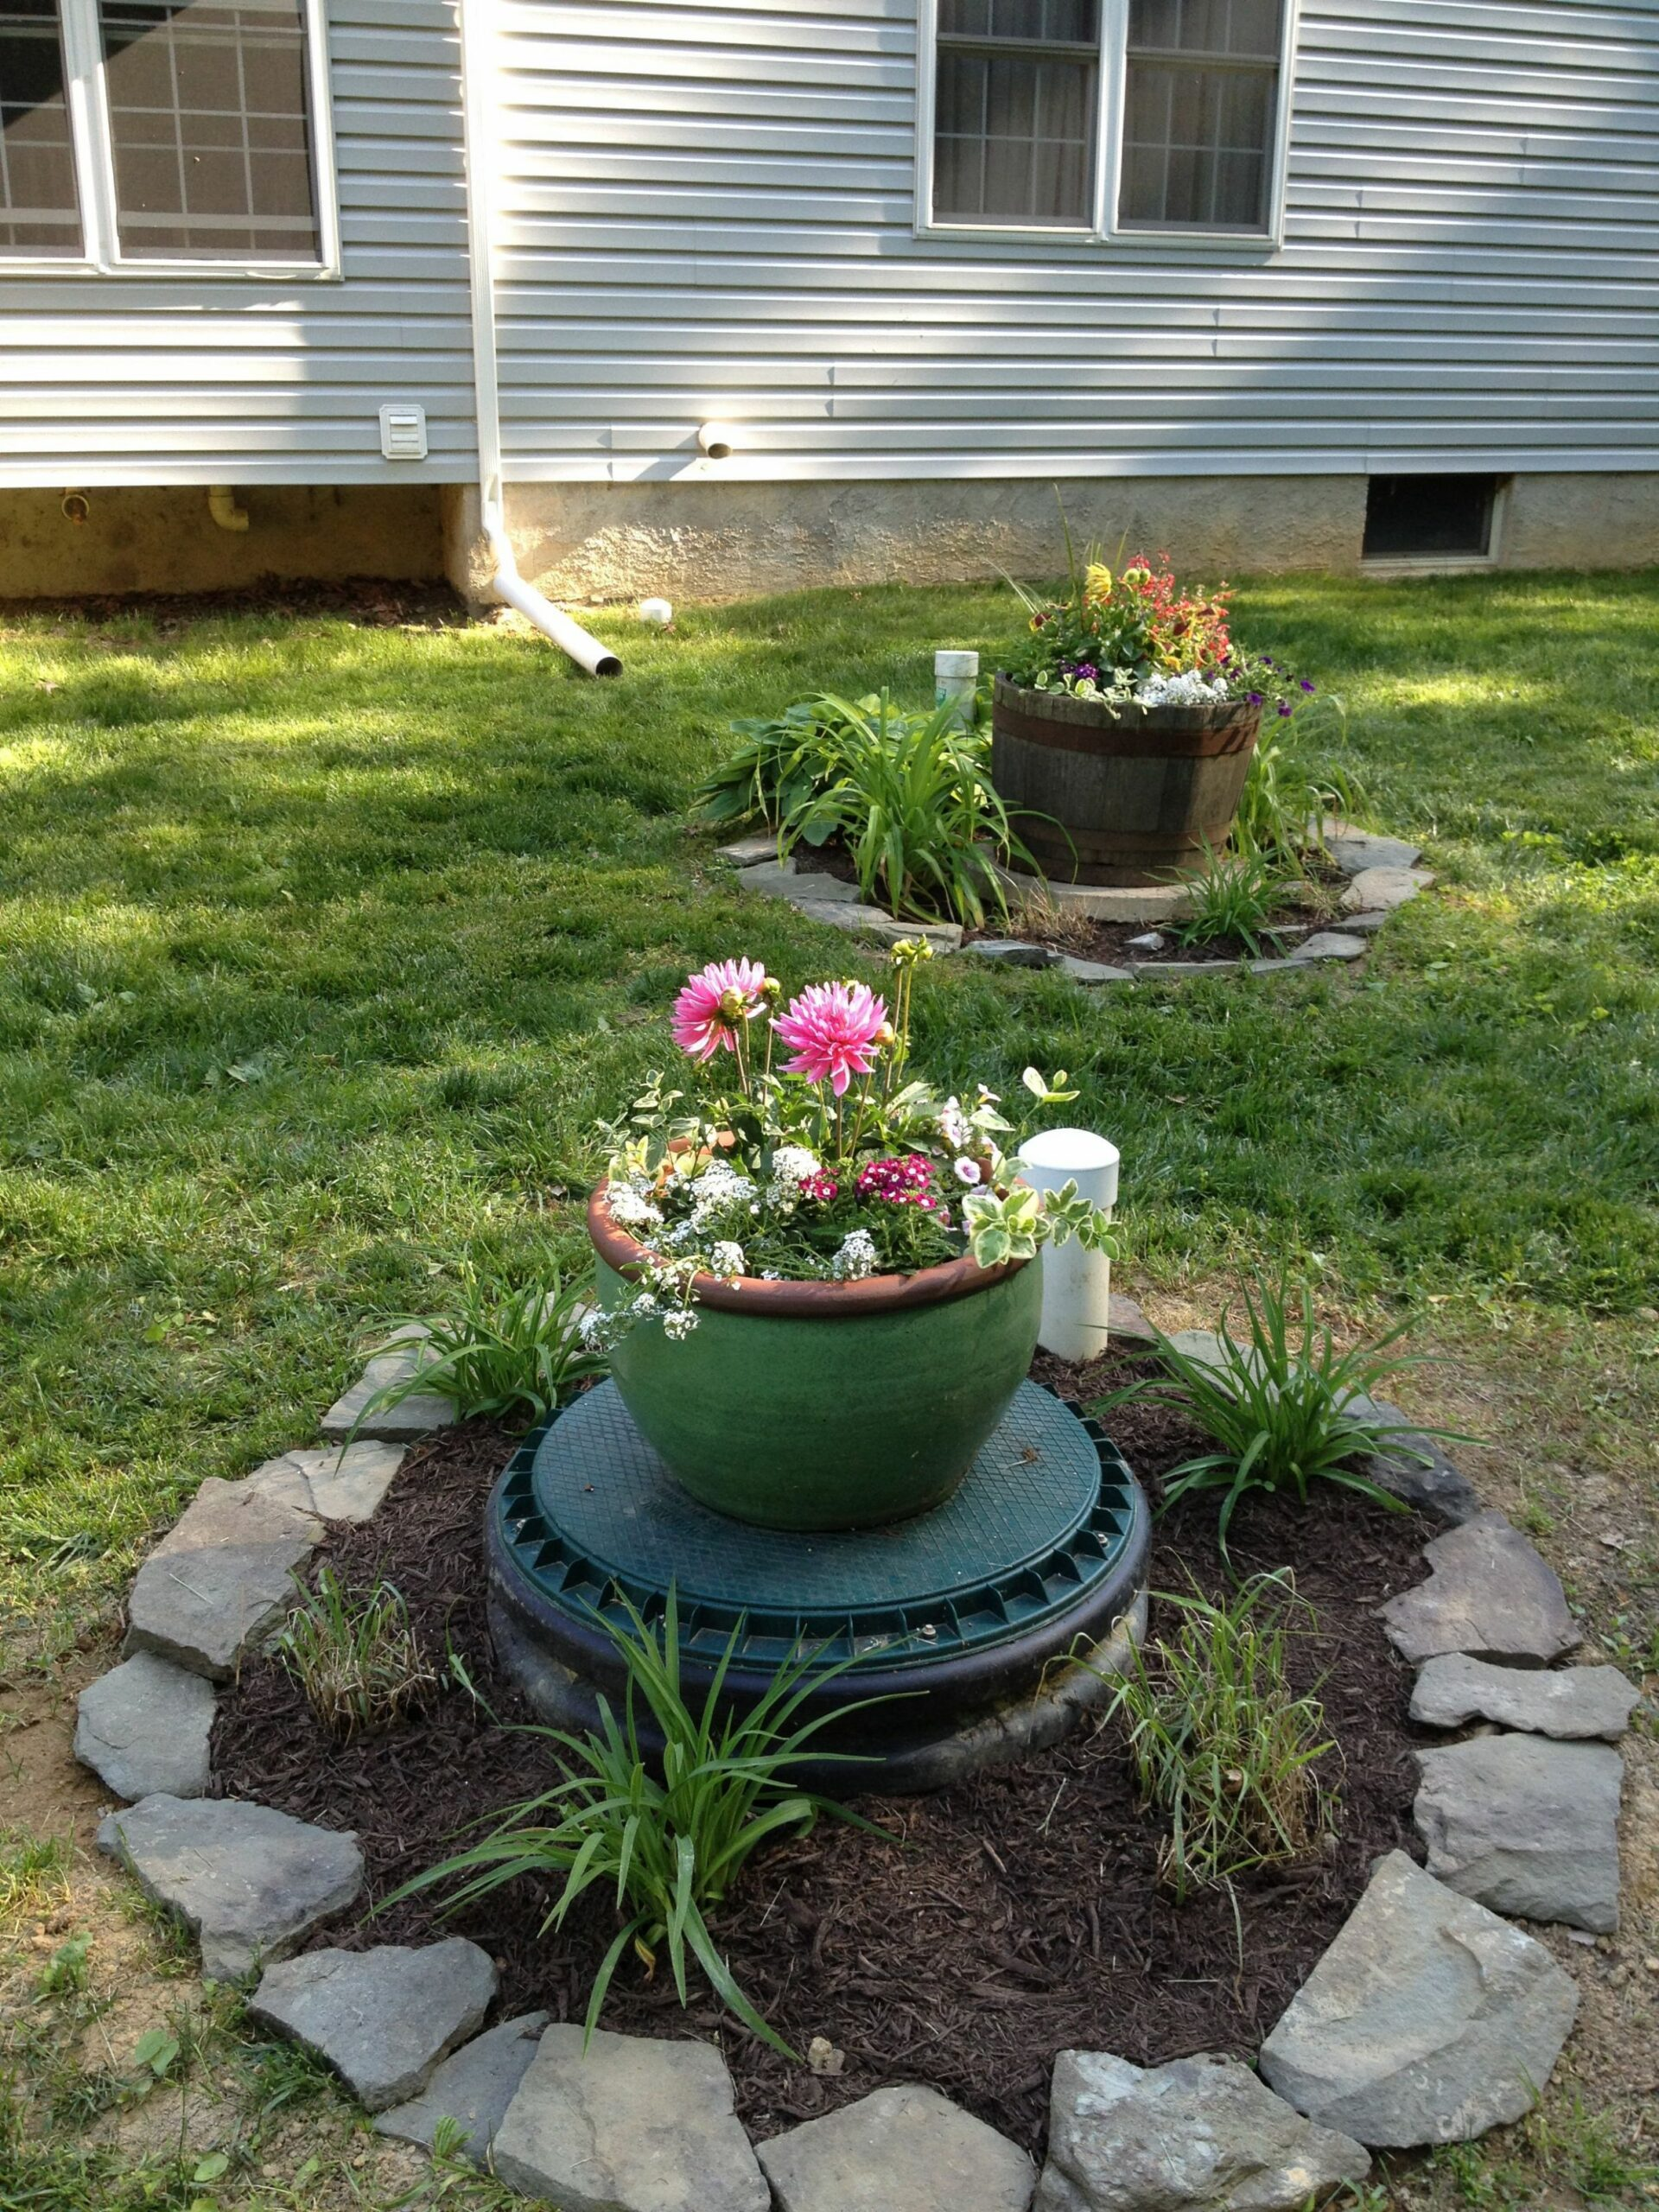 Dressing up the septic covers | Septic tank covers, Patio landscaping - garden ideas to hide septic tank